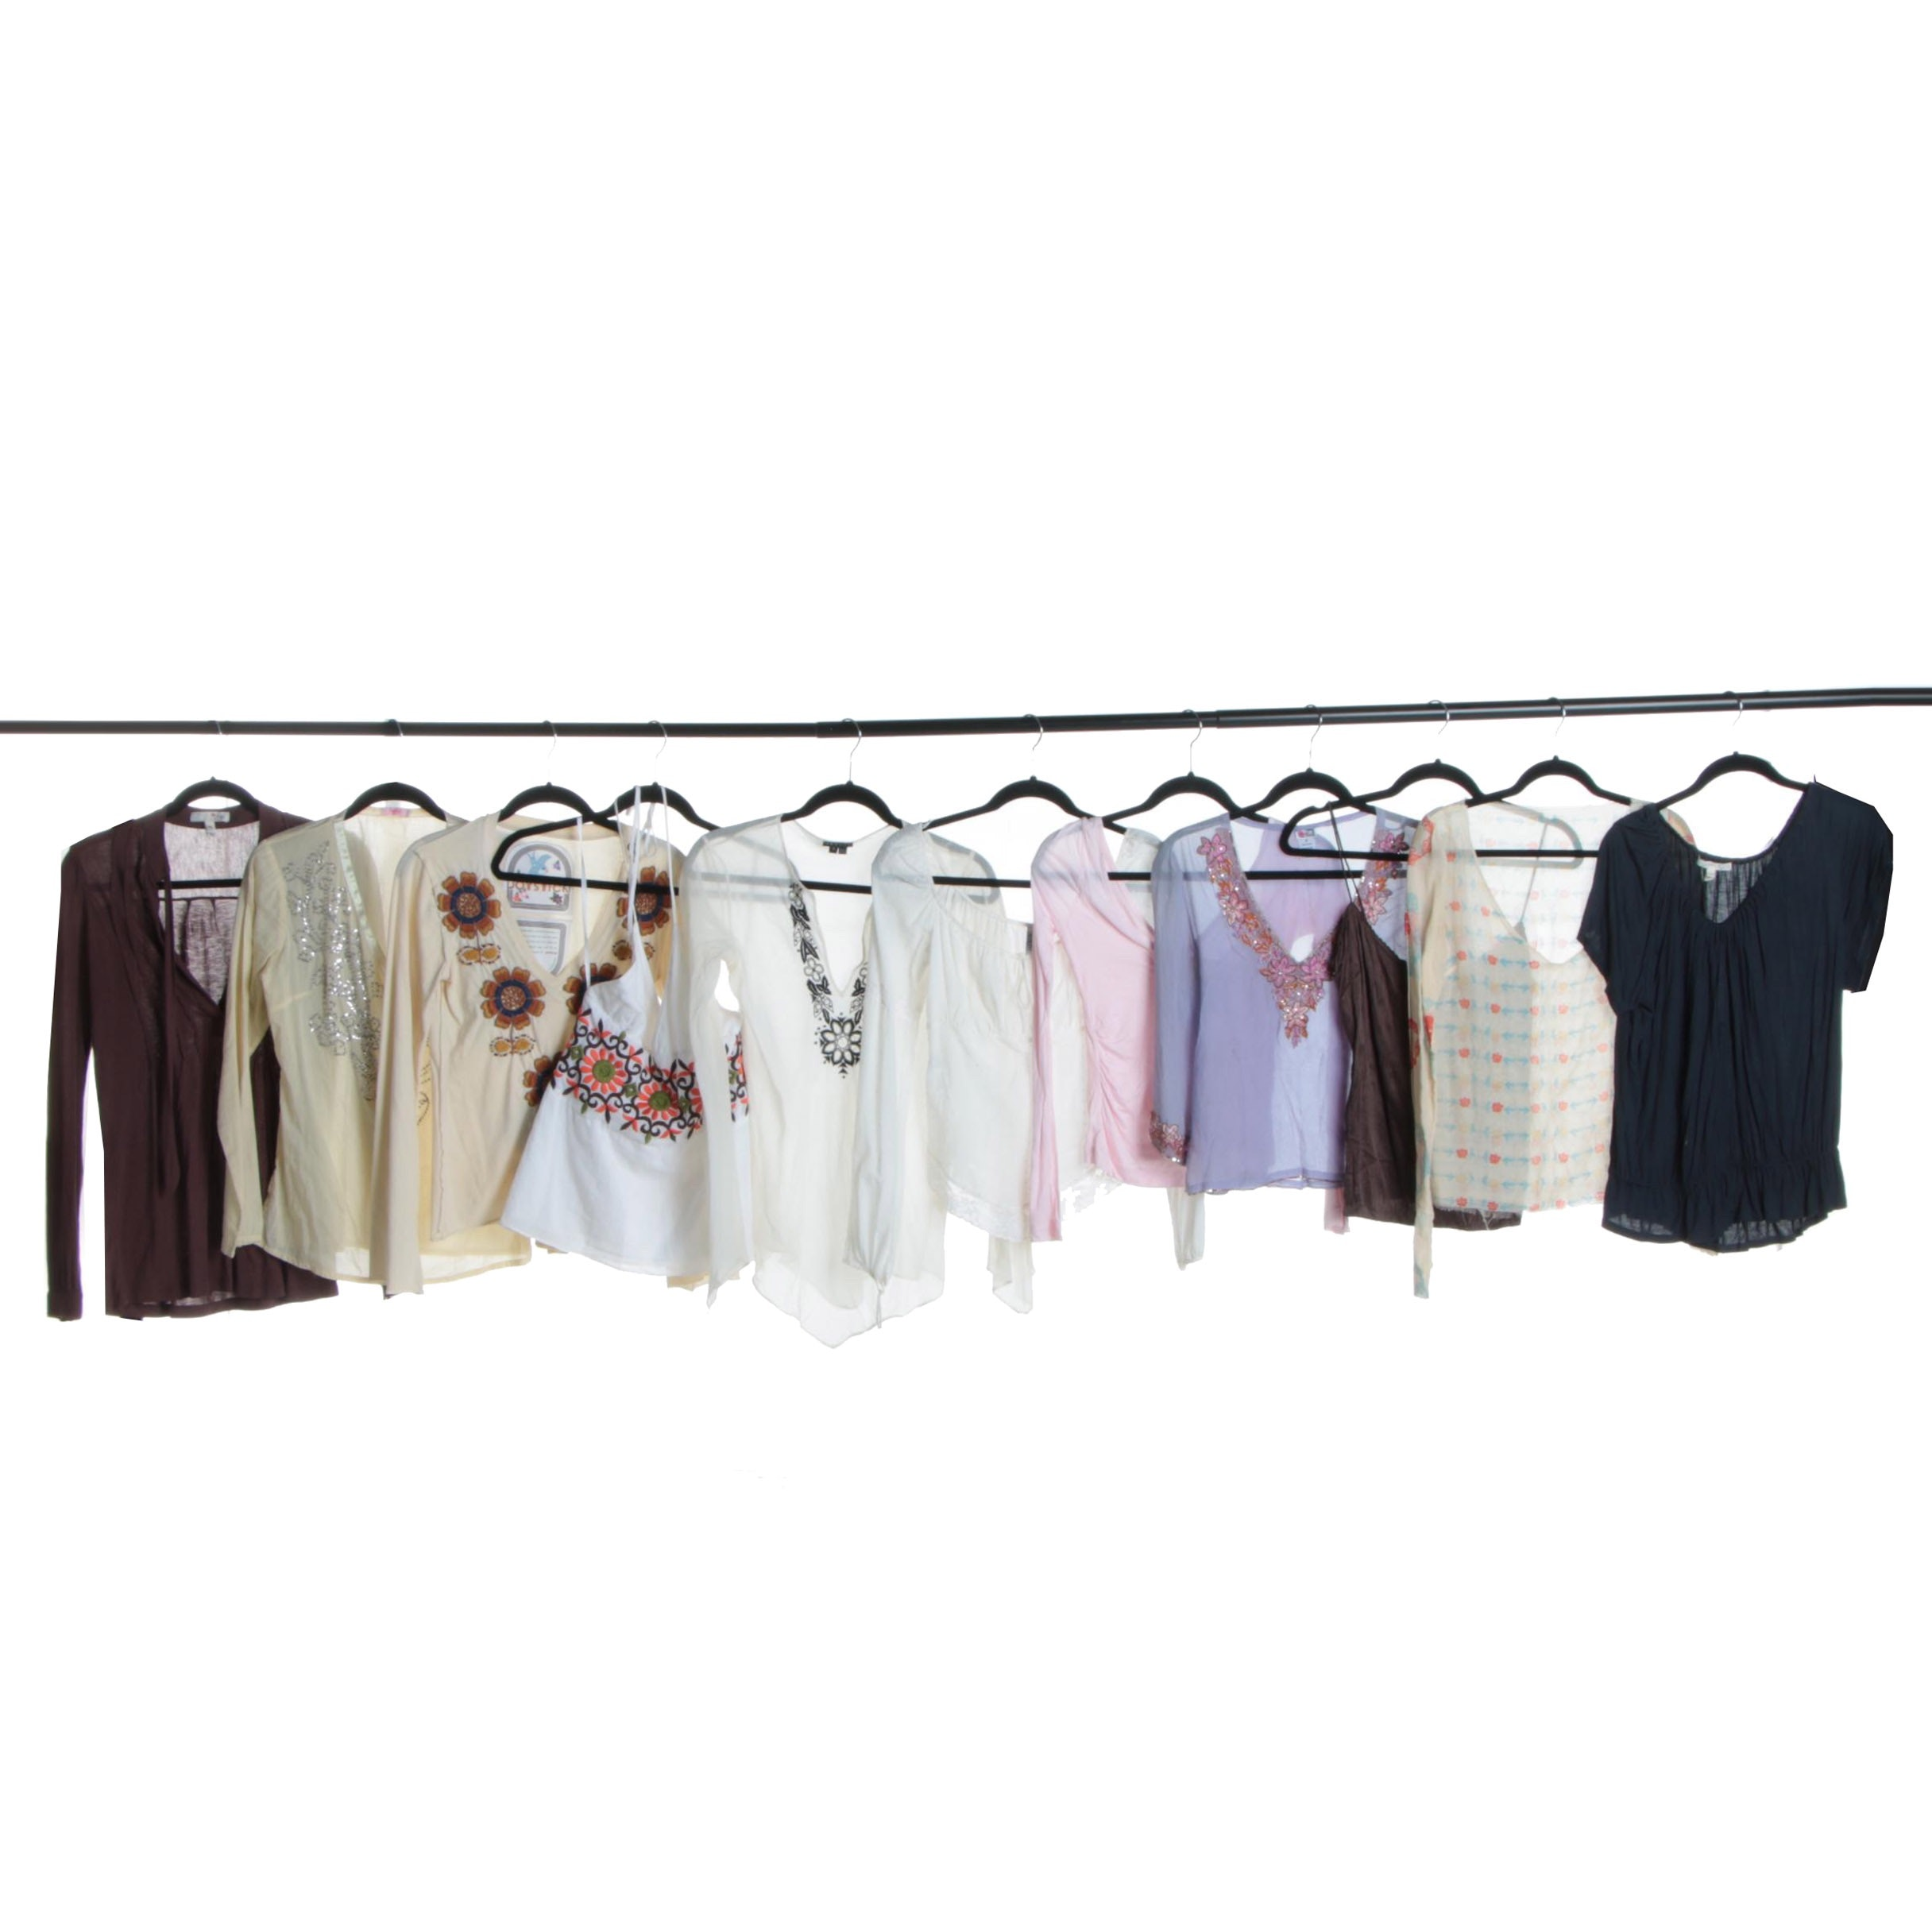 Women's Contemporary Tops Including Theory and Diane von Furstenberg